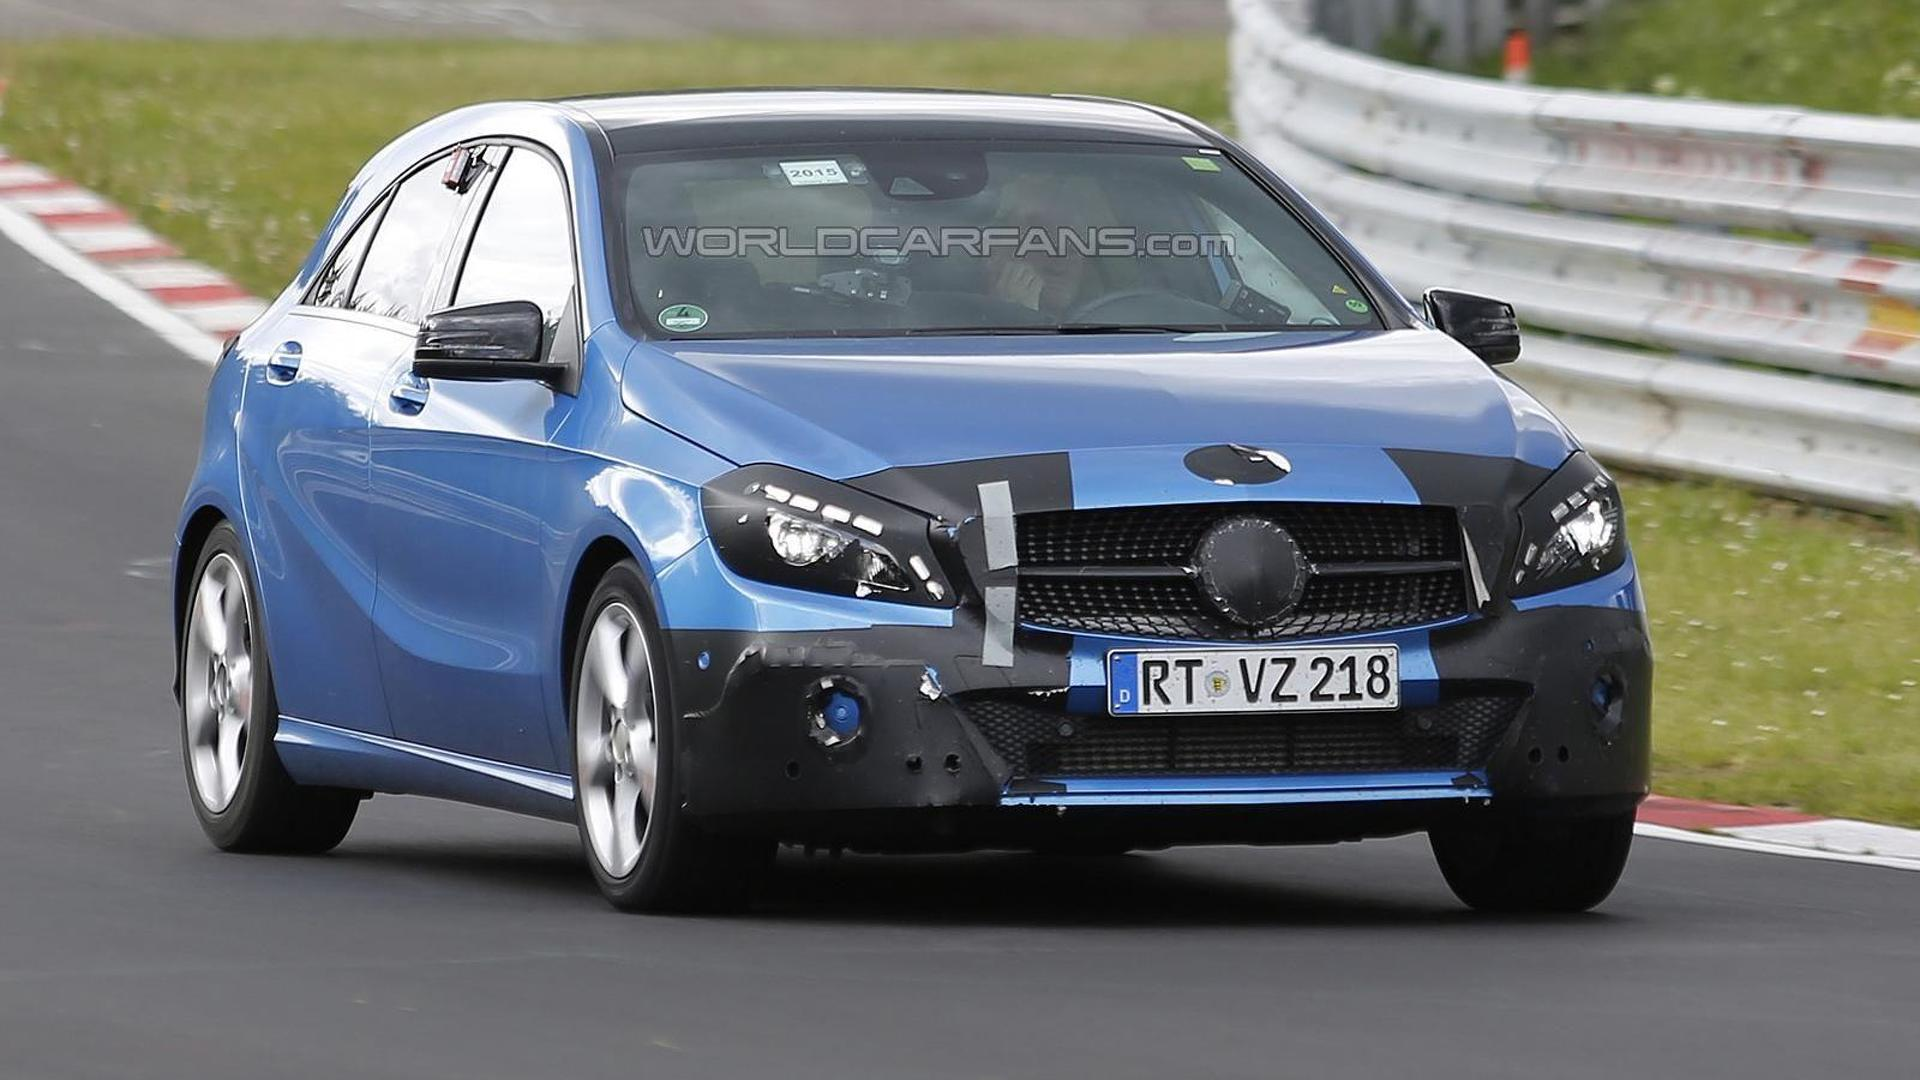 2016 Mercedes Benz A Cl Facelift Hides Subtle Cosmetic Tweaks In Latest Spy Photos